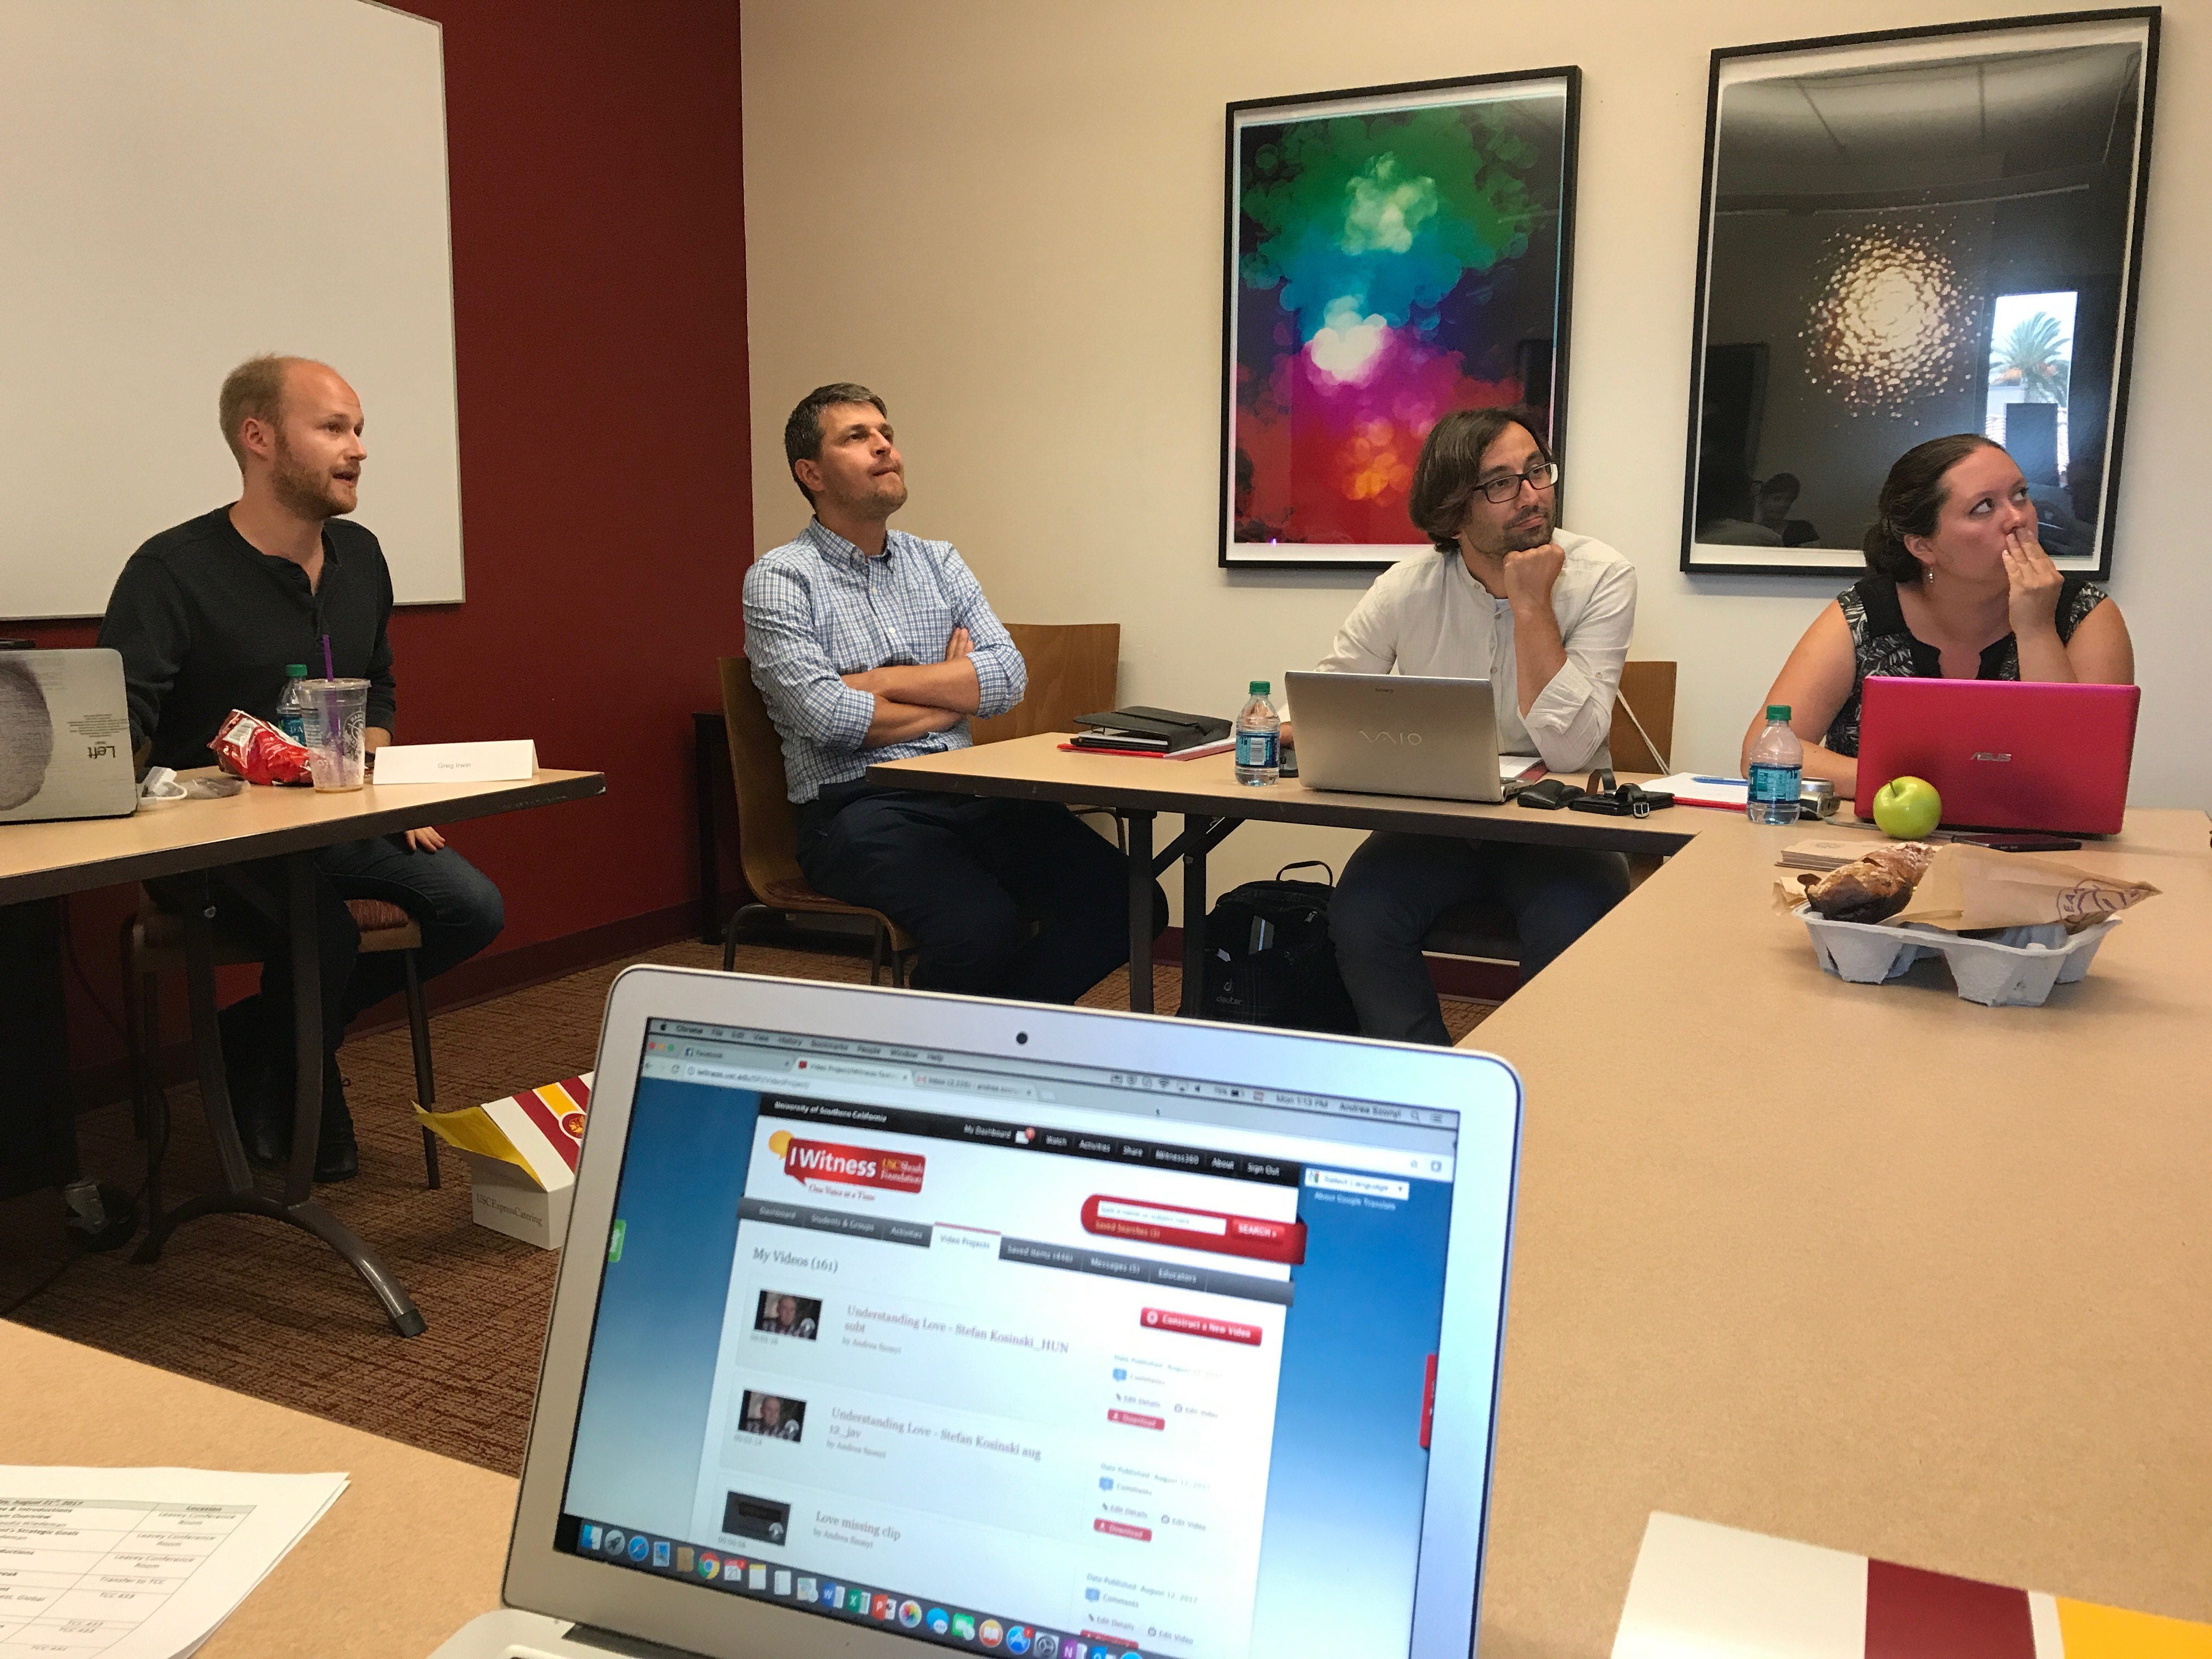 Greg Irwin, left, leads a session on IWitness